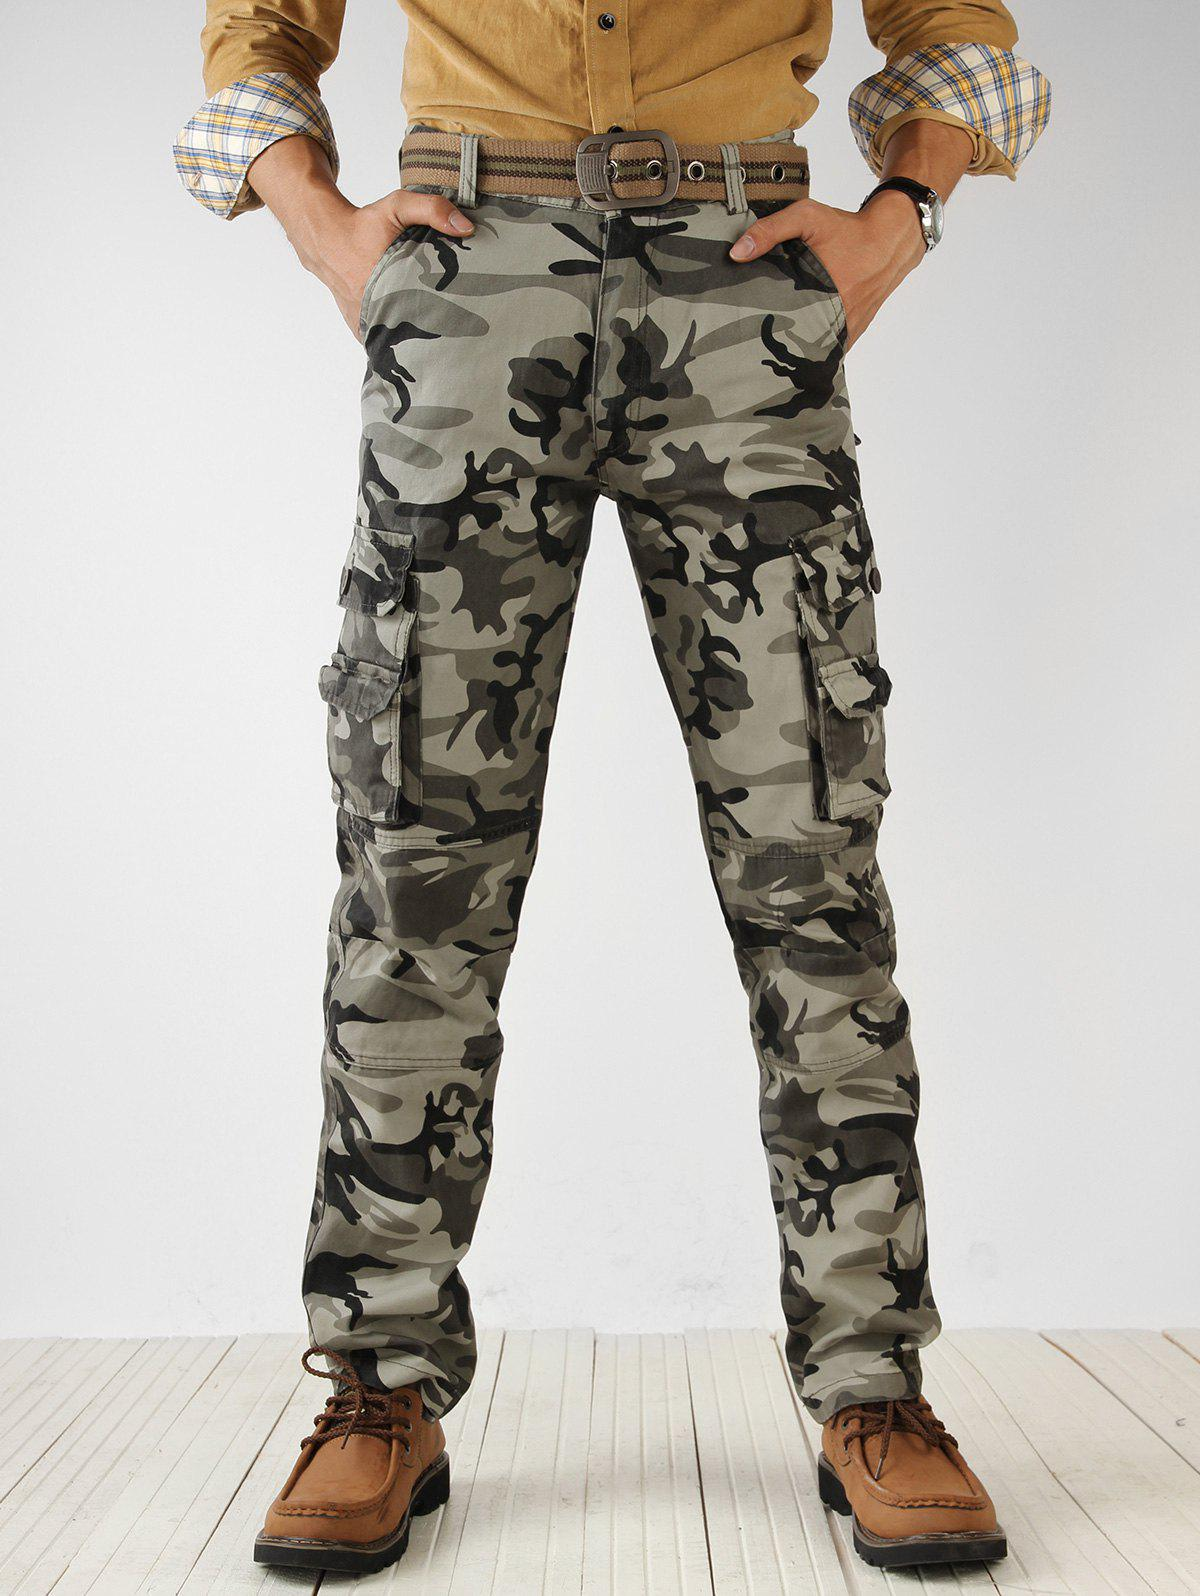 Zip Fly Camouflage Print Cargo Pants - ACU CAMOUFLAGE 32